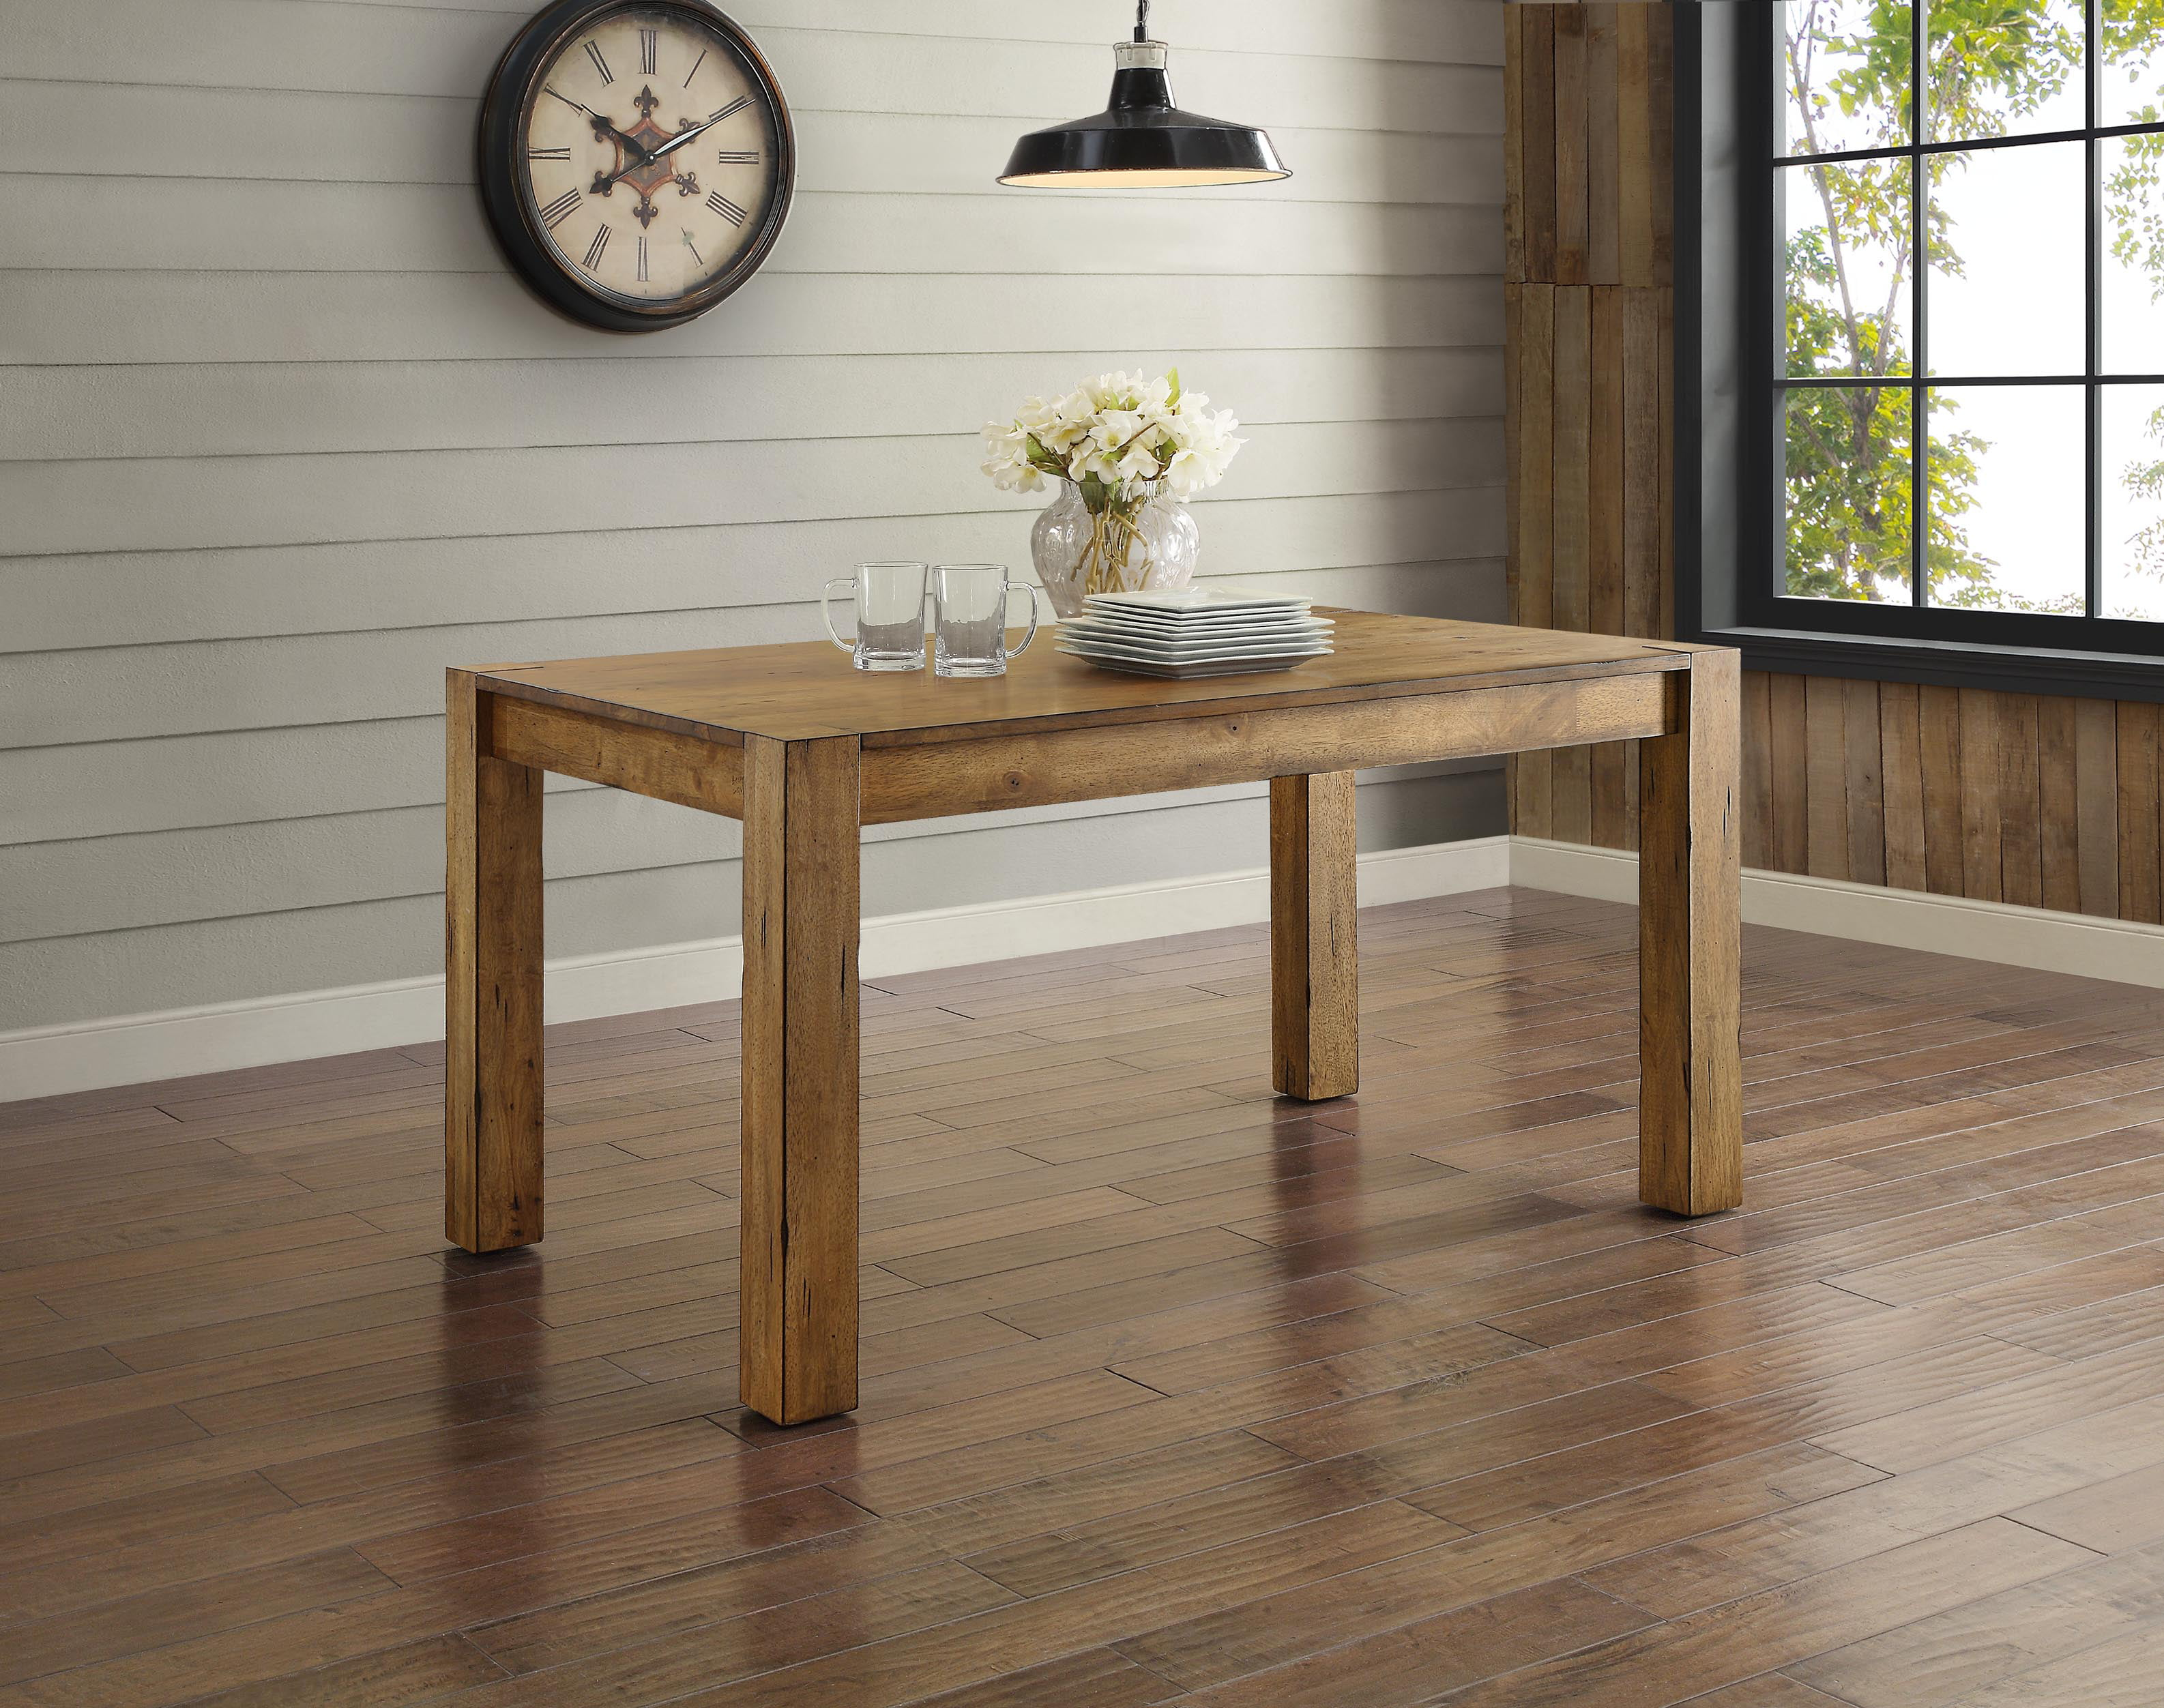 Dining room set rustic - Better Homes And Gardens Bryant Dining Table Rustic Brown Walmart Com